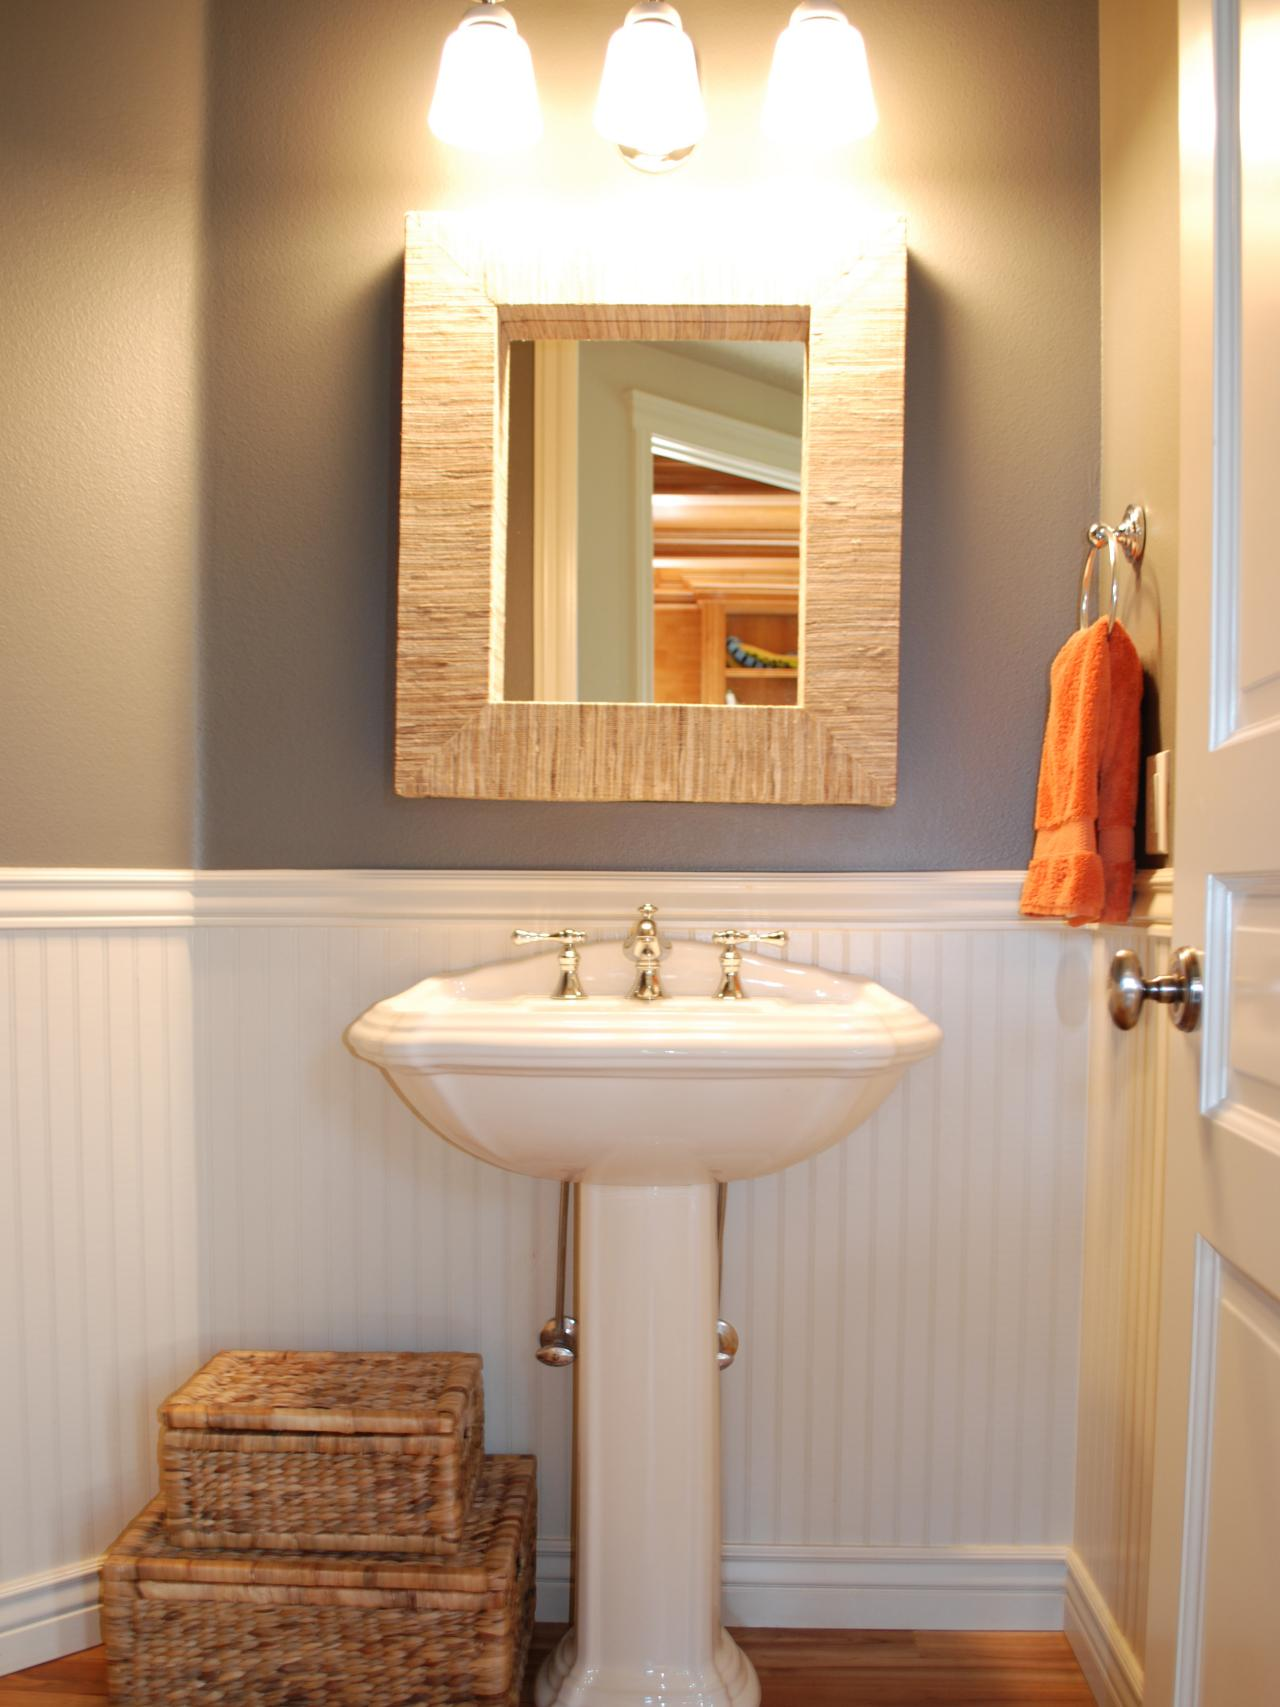 12 clever bathroom storage ideas bathroom ideas for Bathroom designs hgtv